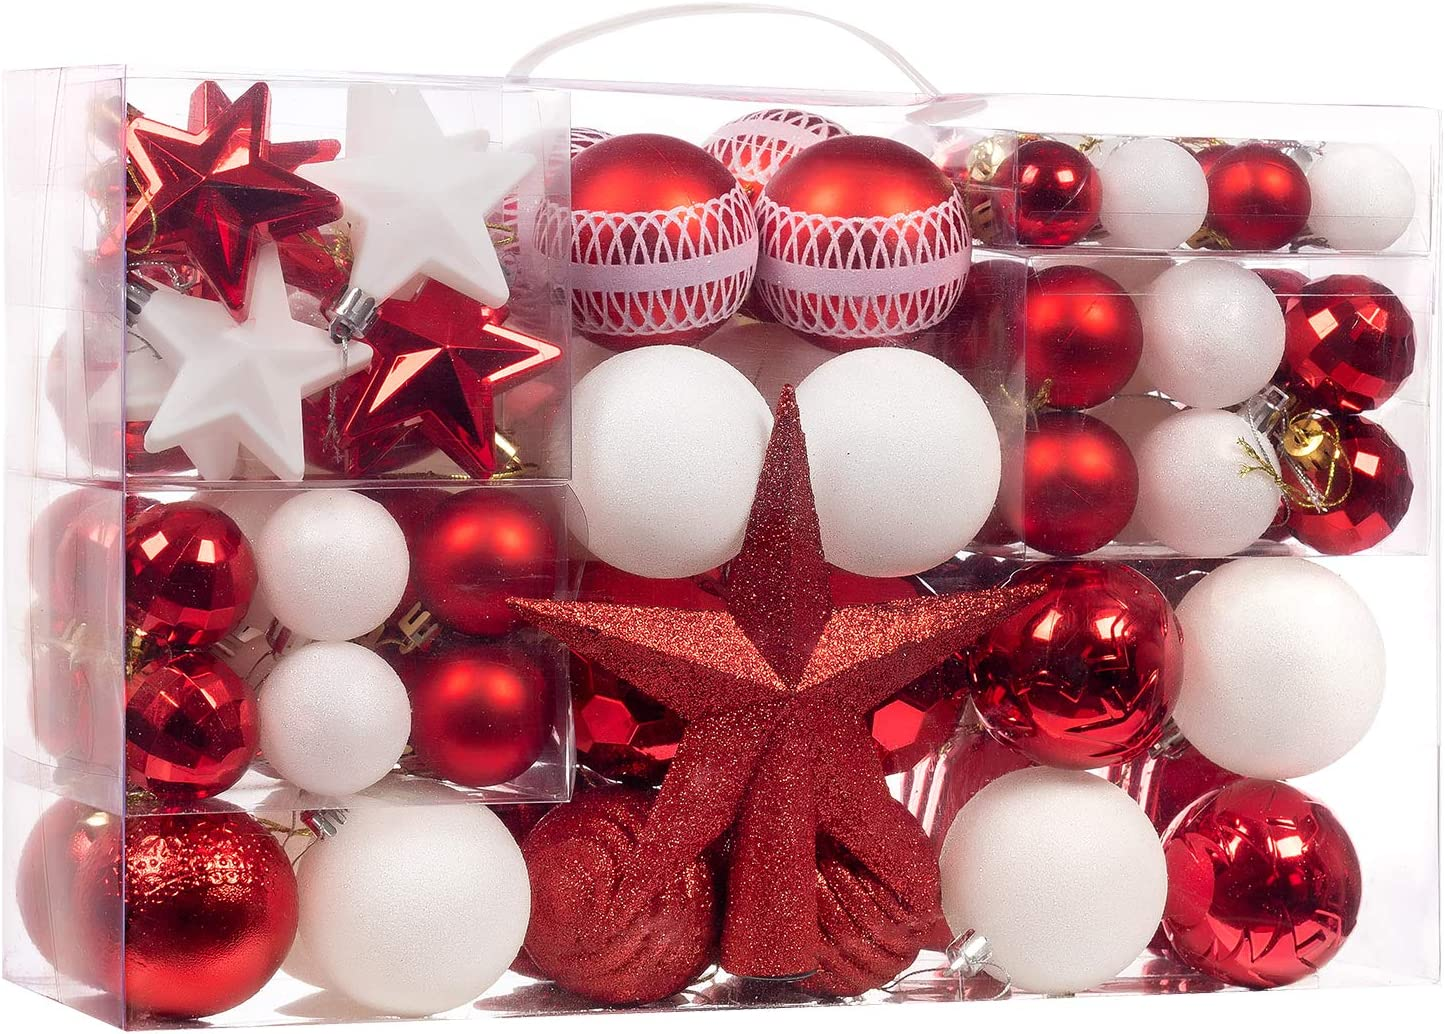 100-Pcs Red&White Christmas Ball Ornaments Assorted Shatterproof Christmas Ball Set with Reusable Hand-held Gift Package for Xmas Tree Decoration